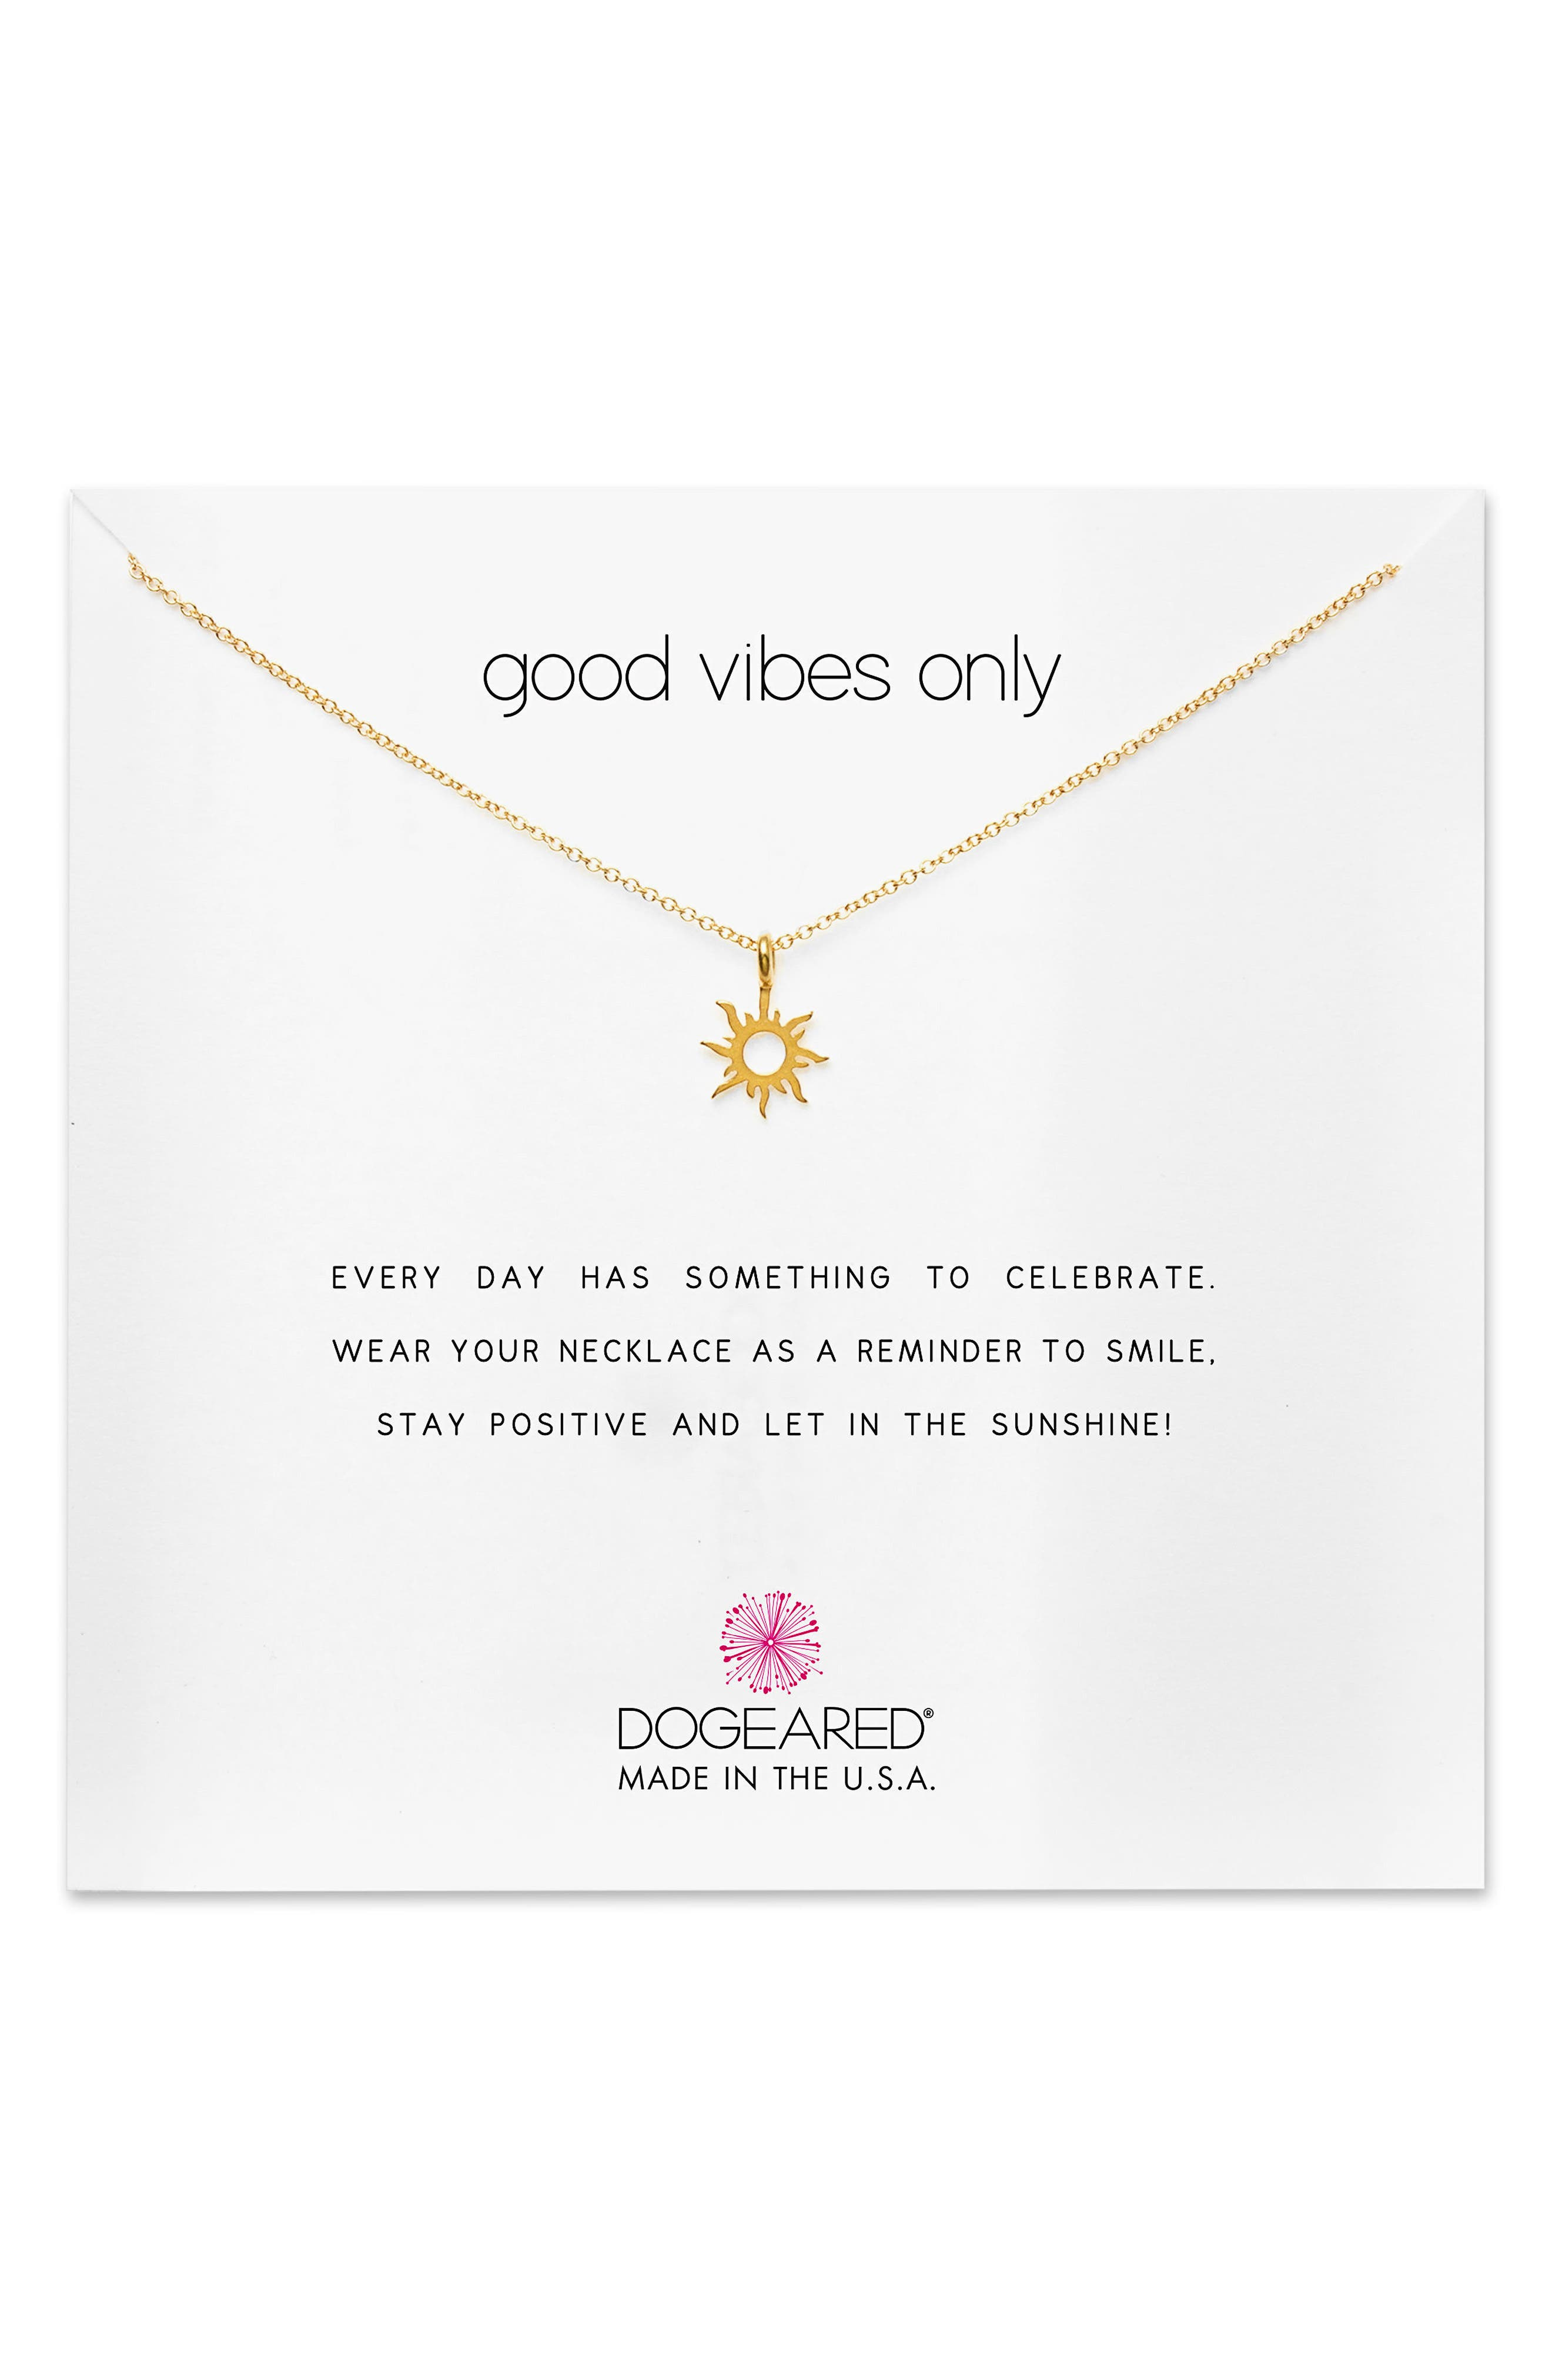 Alternate Image 1 Selected - Dogeared Good Vibes Only Pendant Necklace